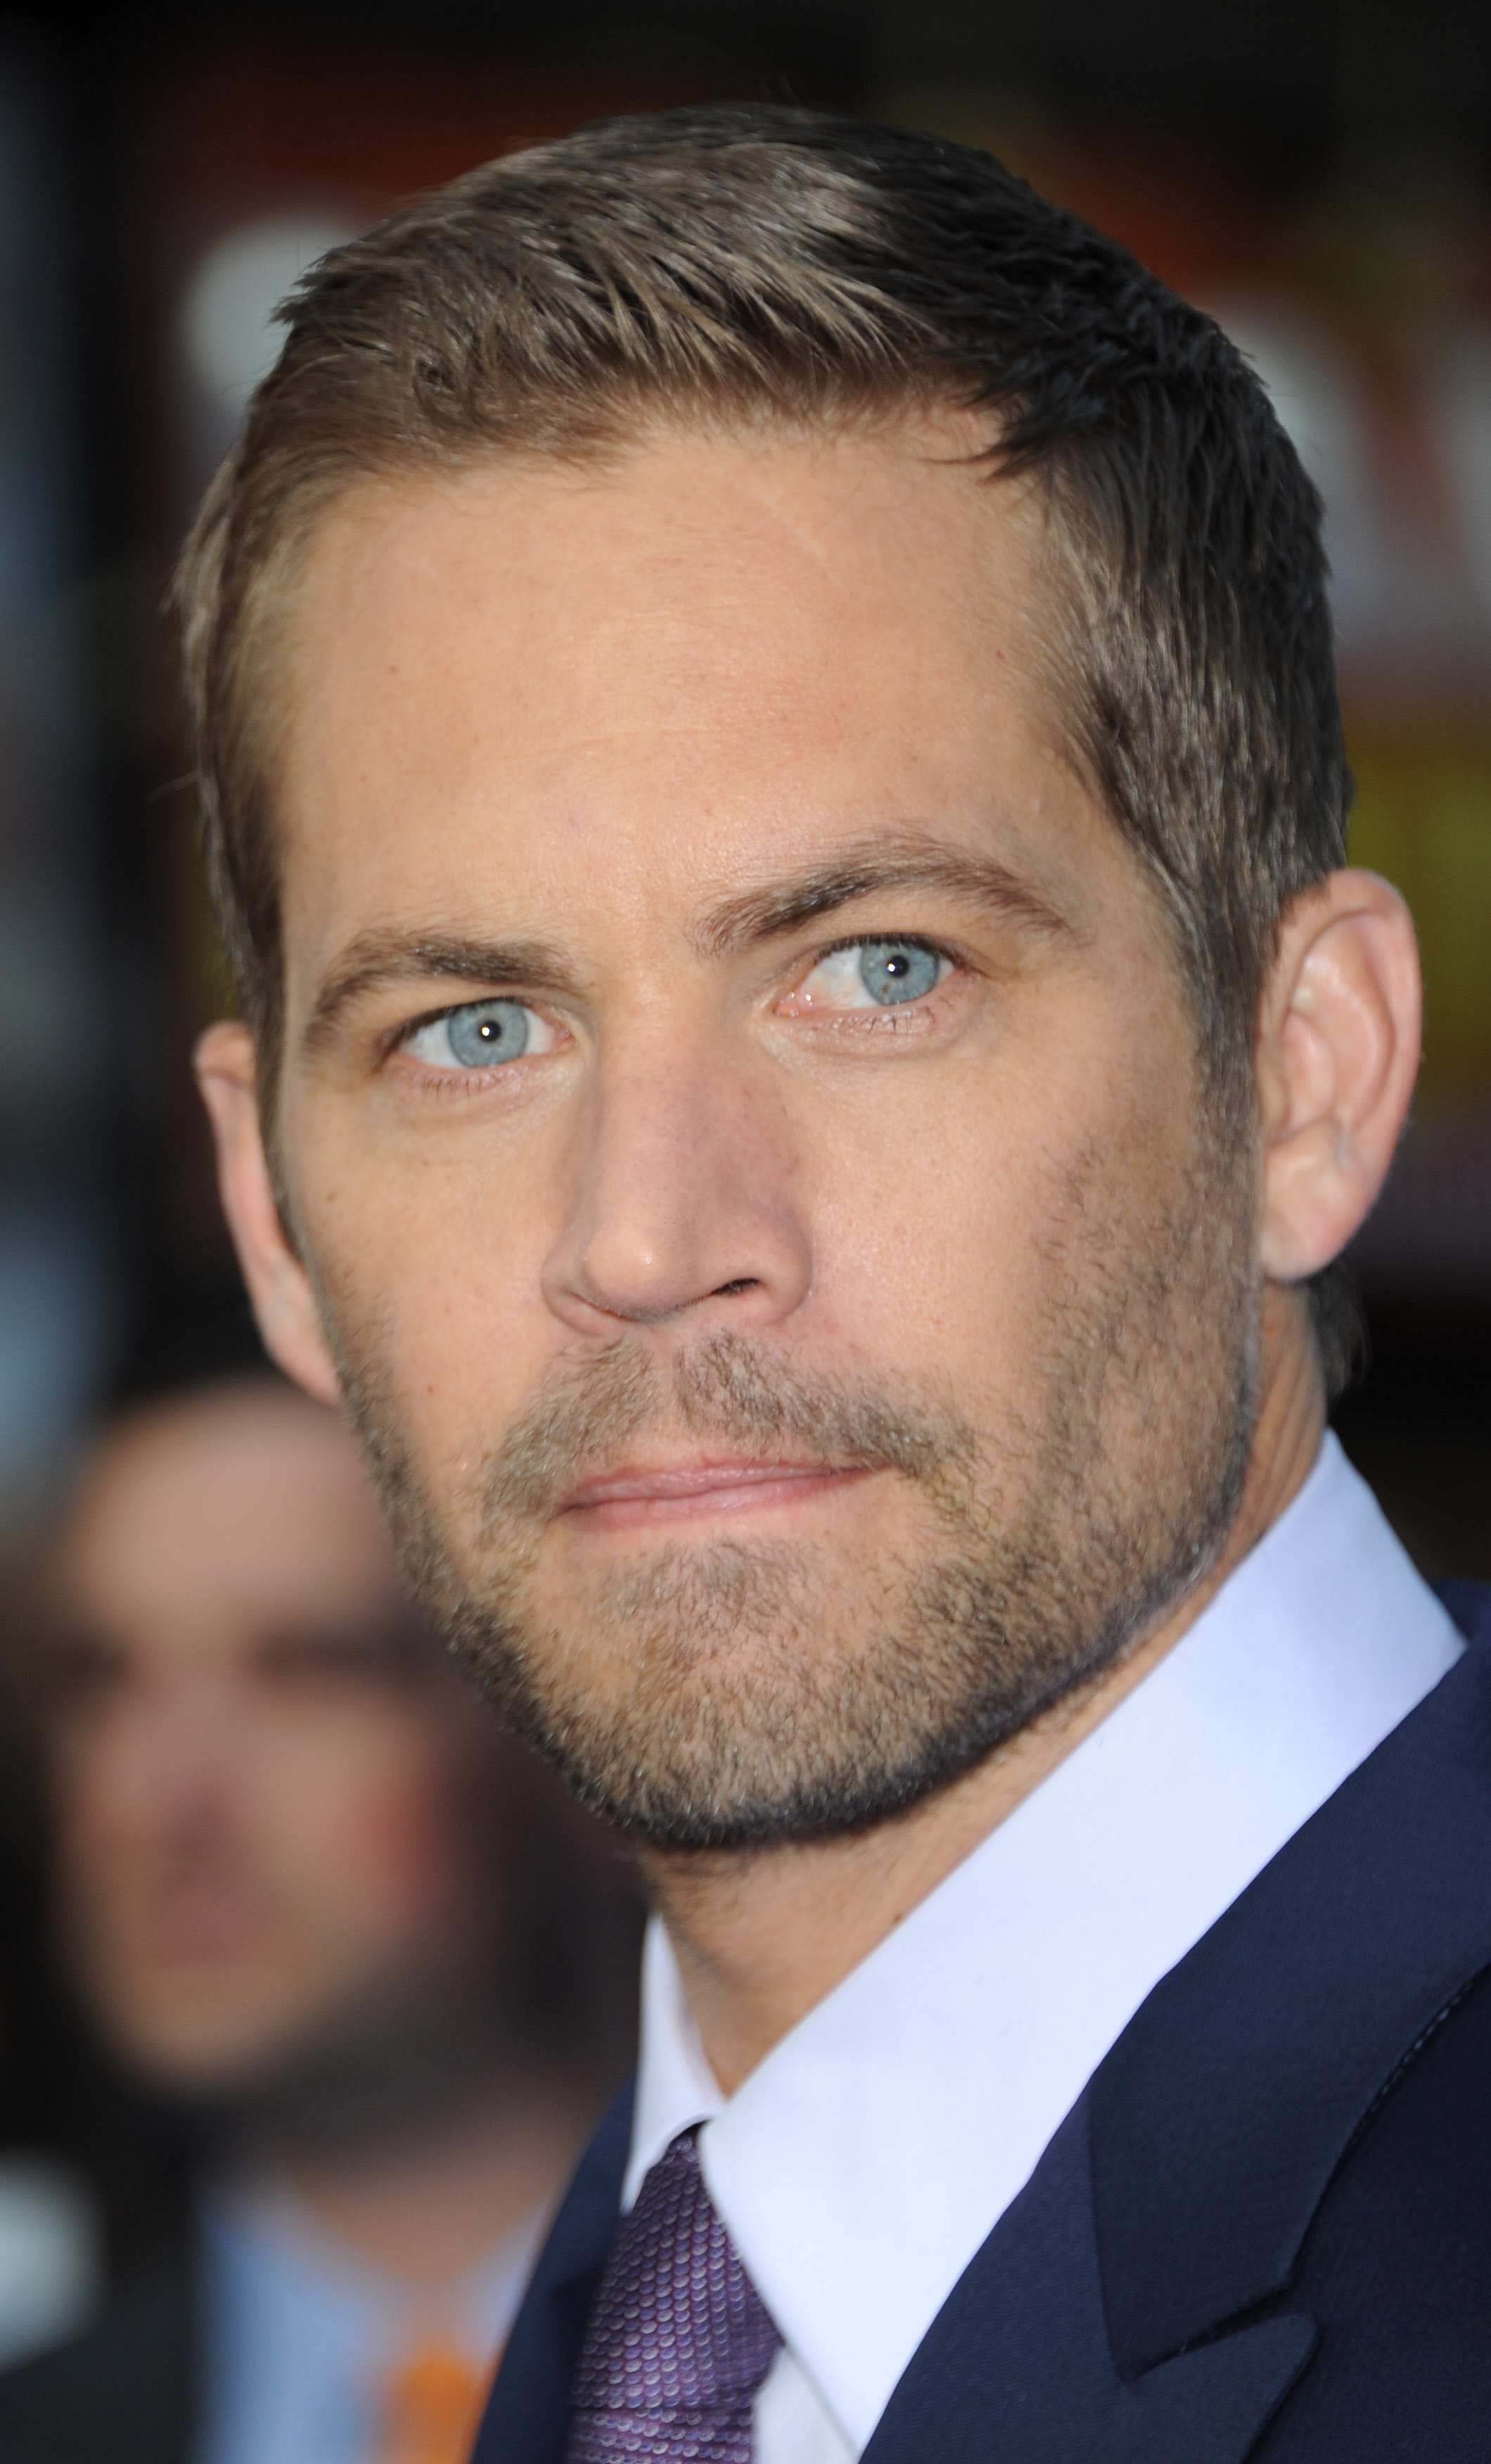 entertainment celebs have meet guys filled paul walker fast furious